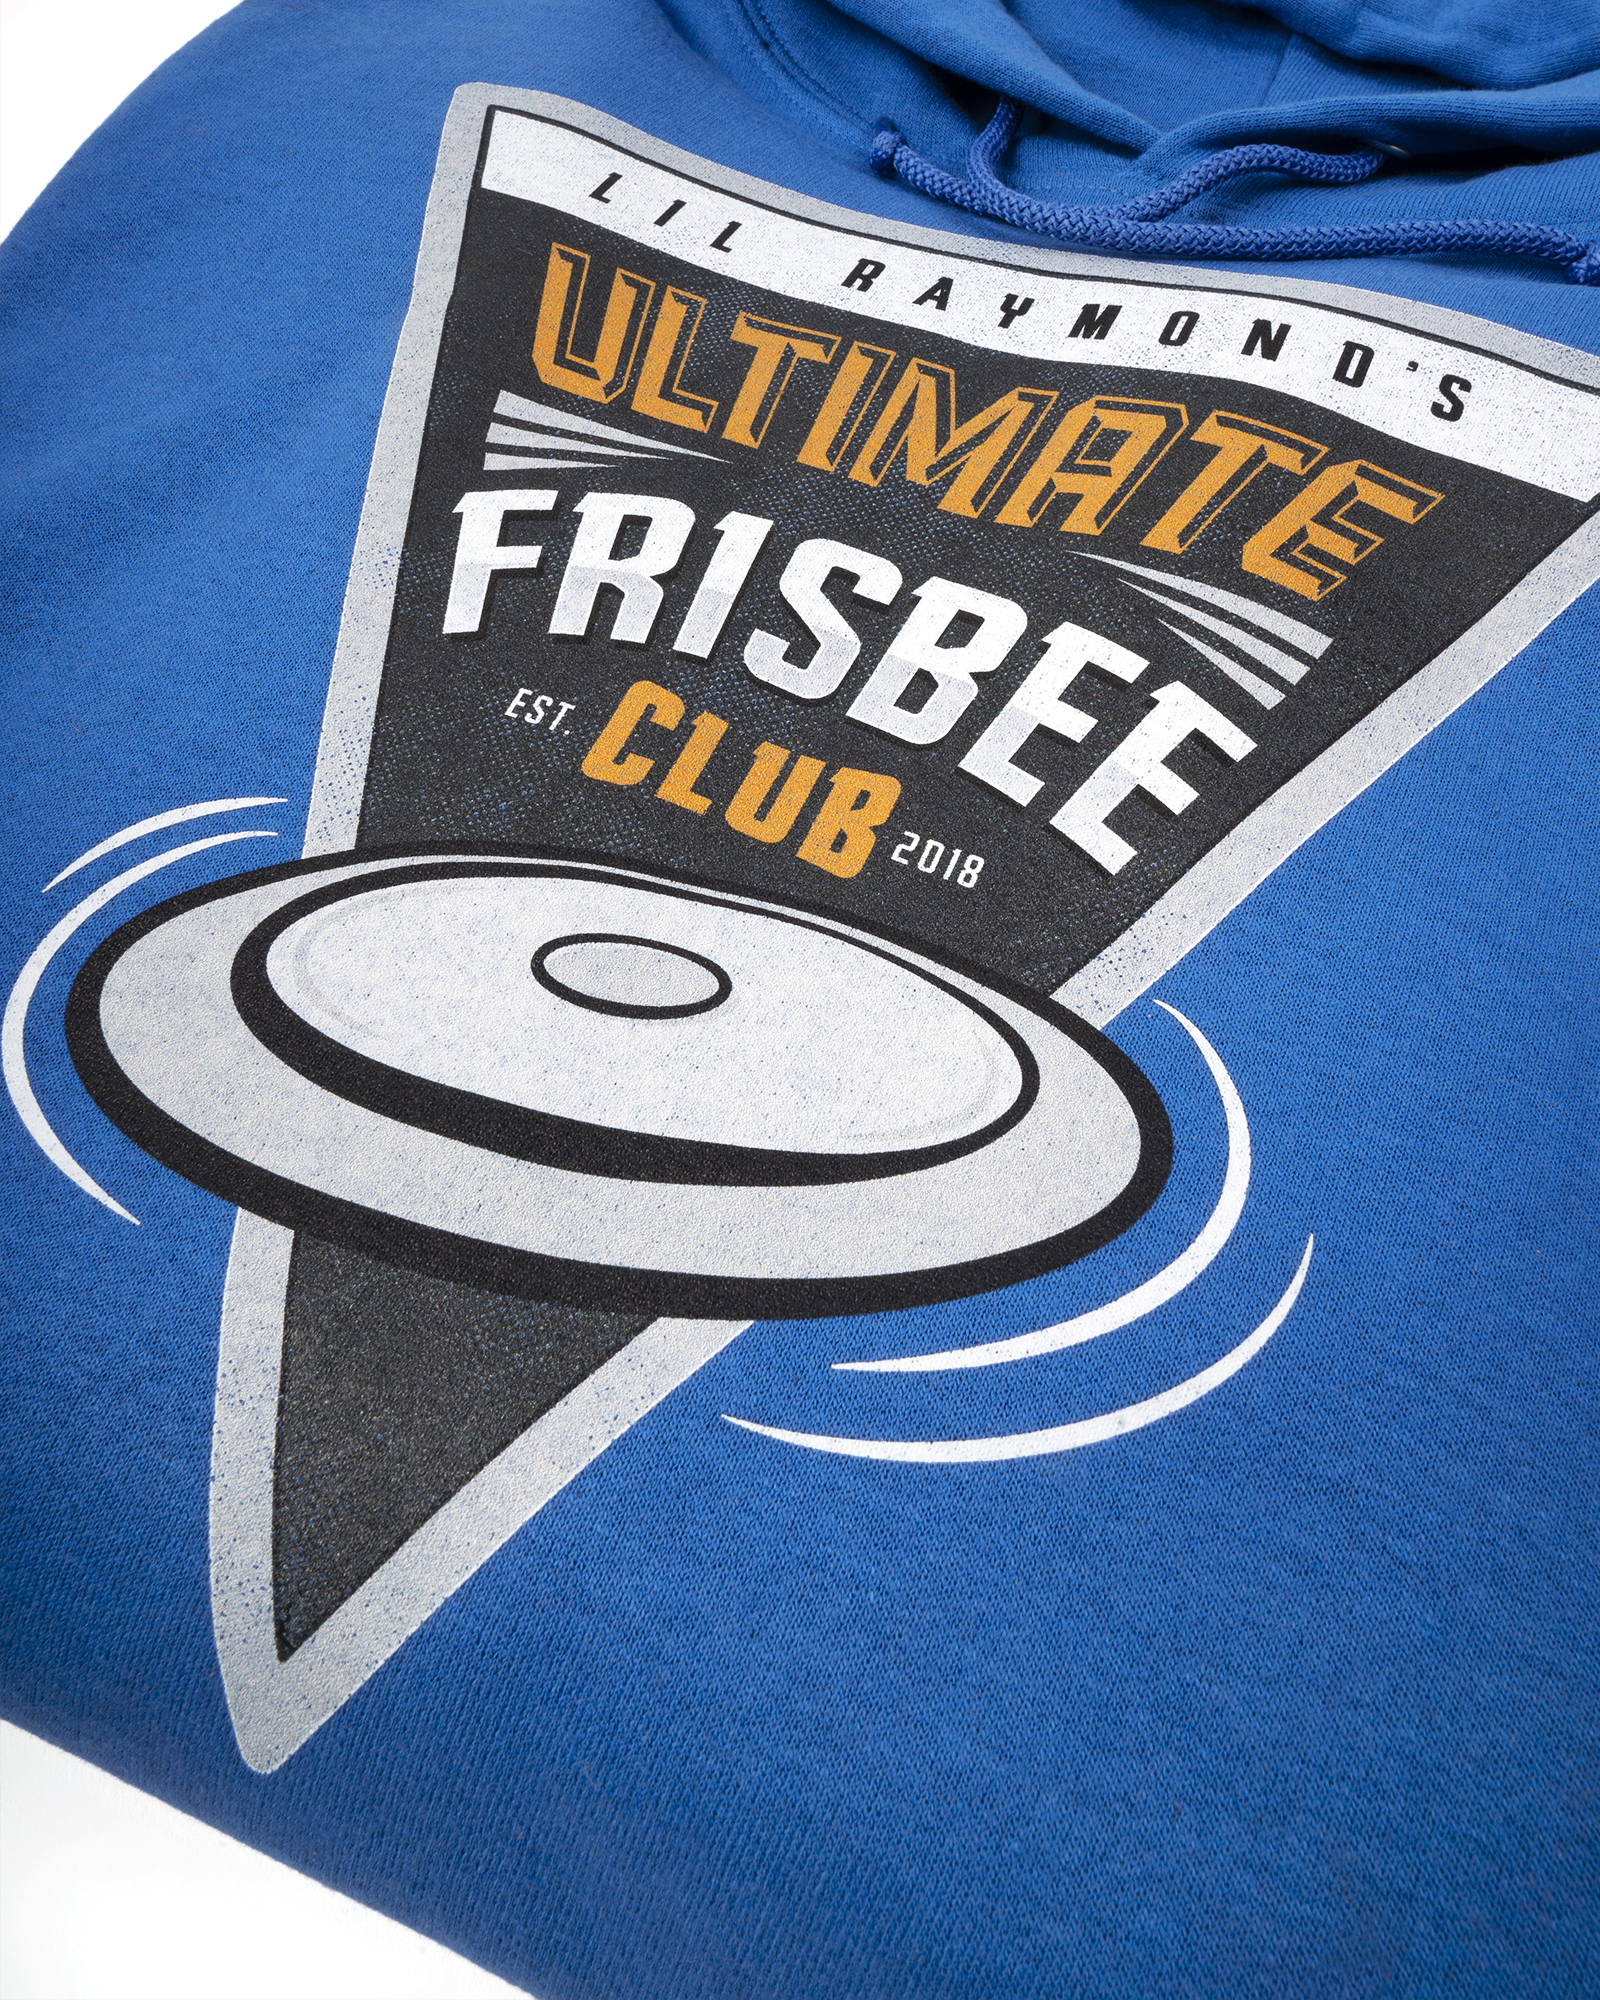 A closeup of the Fuel print of a Frisbee Club logo on a folded blue hoodie